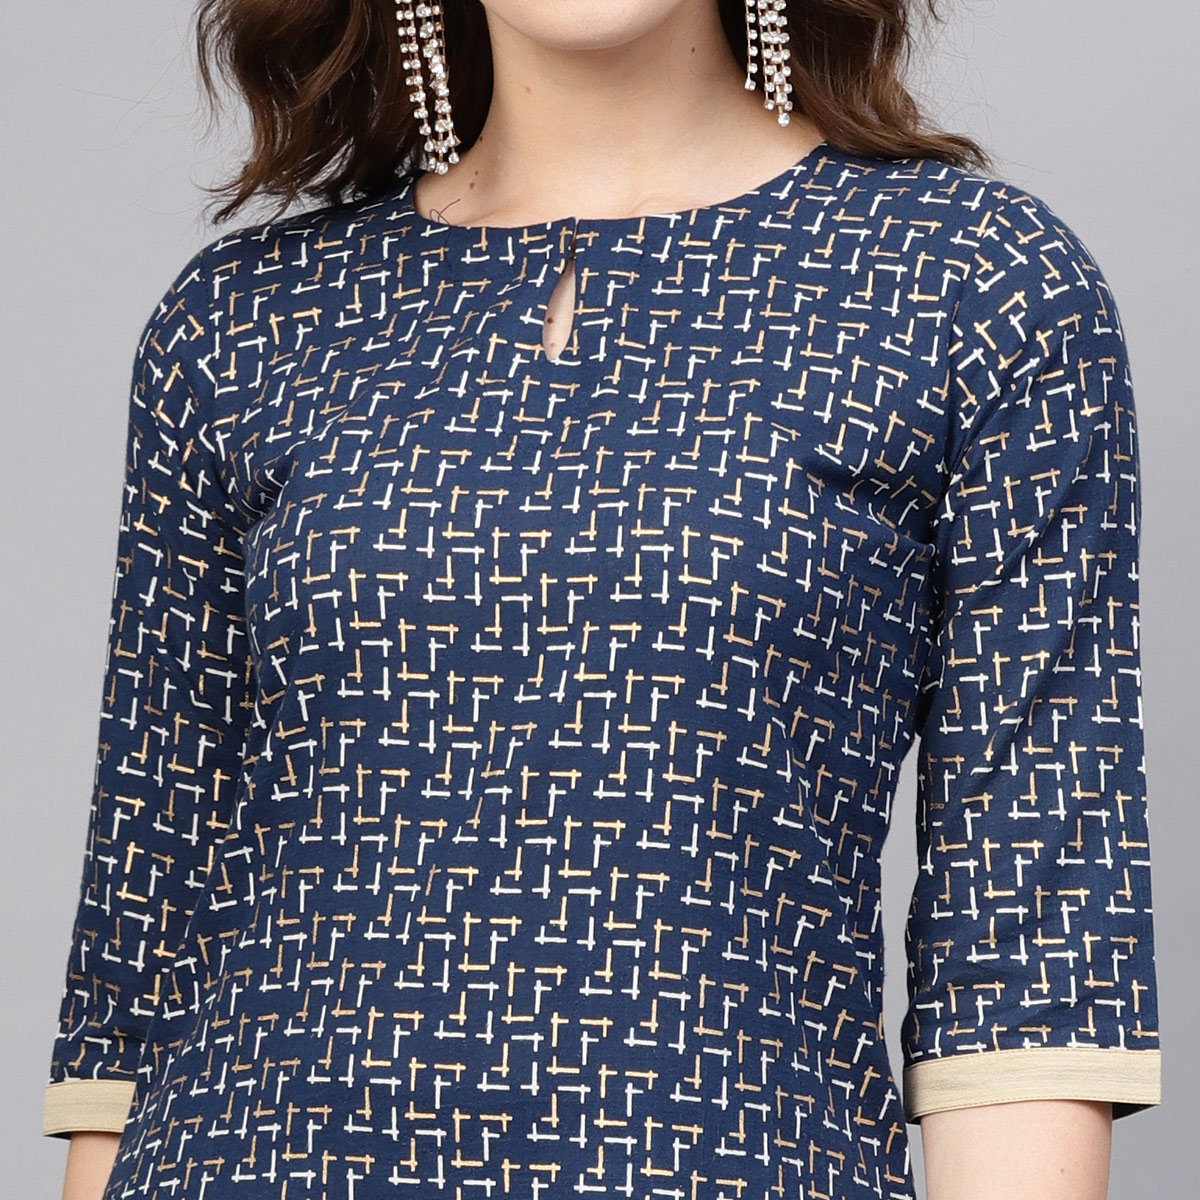 Desirable Navy Blue Colored Casual Printed Pure Cotton Kurti-Pant Set